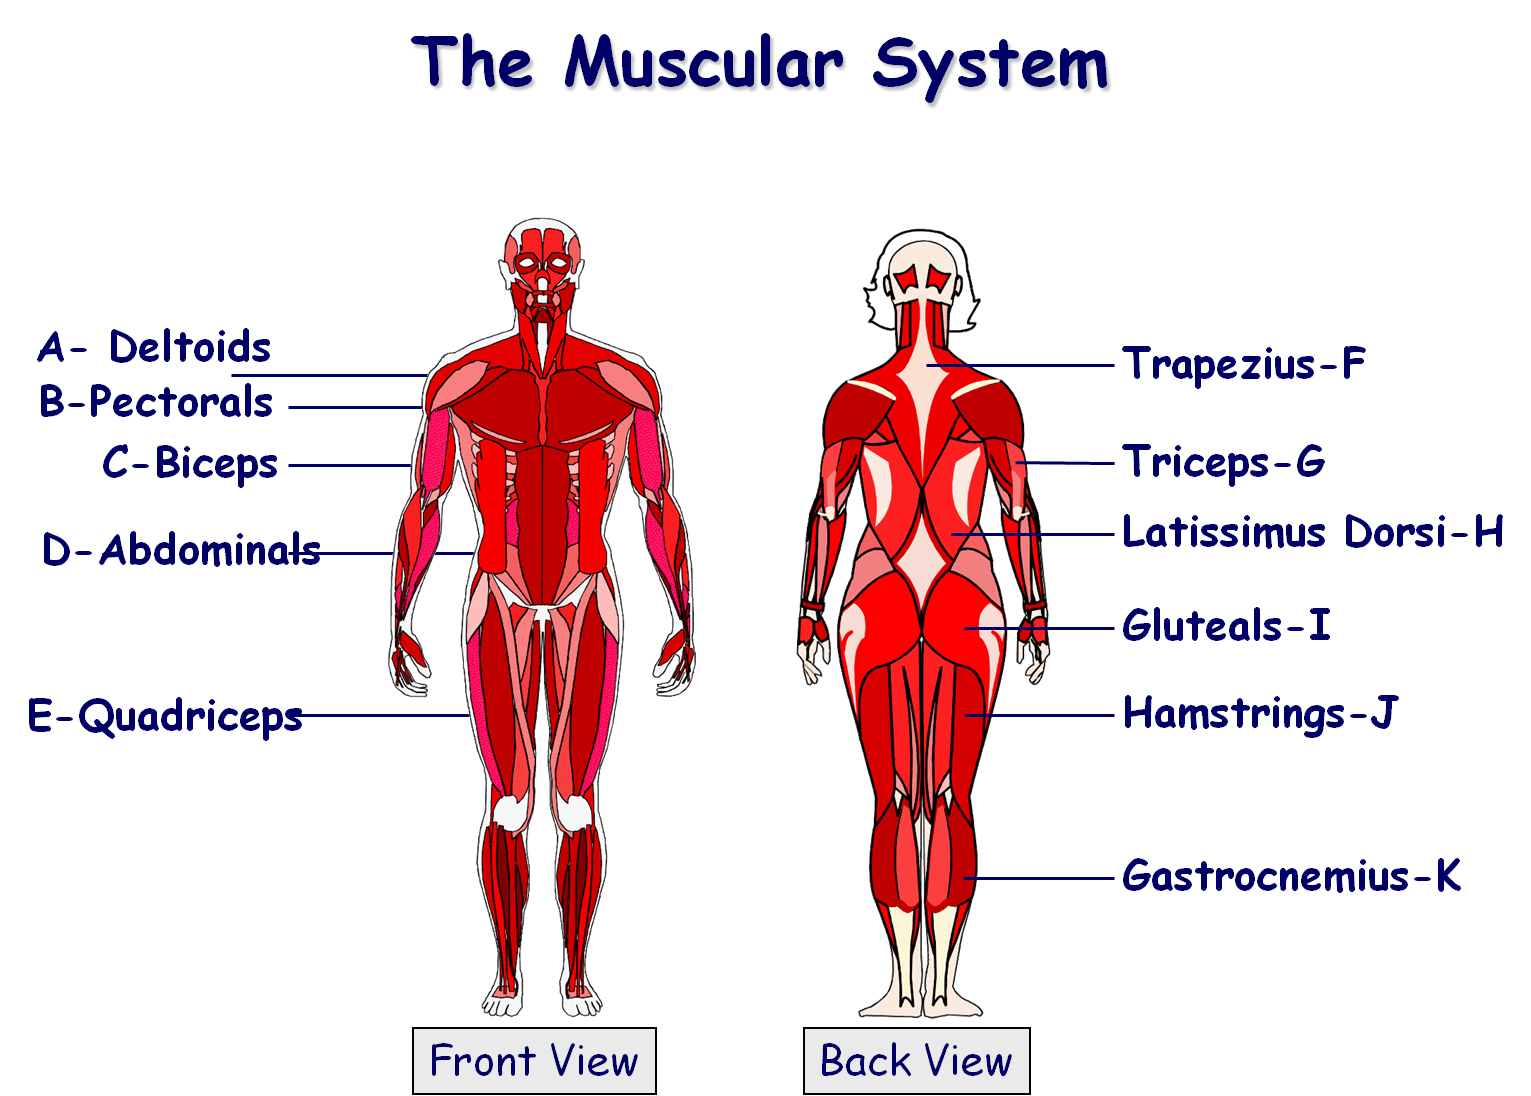 Muscular System